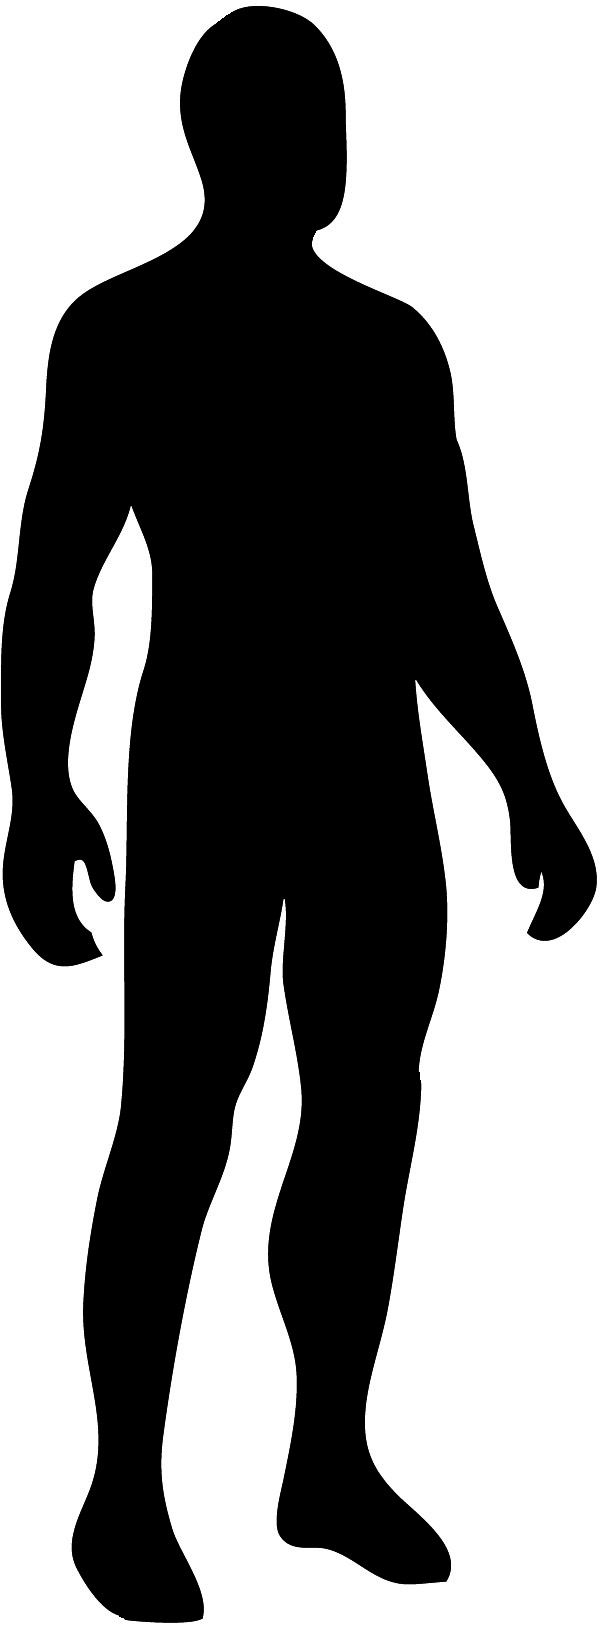 Free human clipart banner free library Free Human Body Clipart, Download Free Clip Art, Free Clip Art on ... banner free library